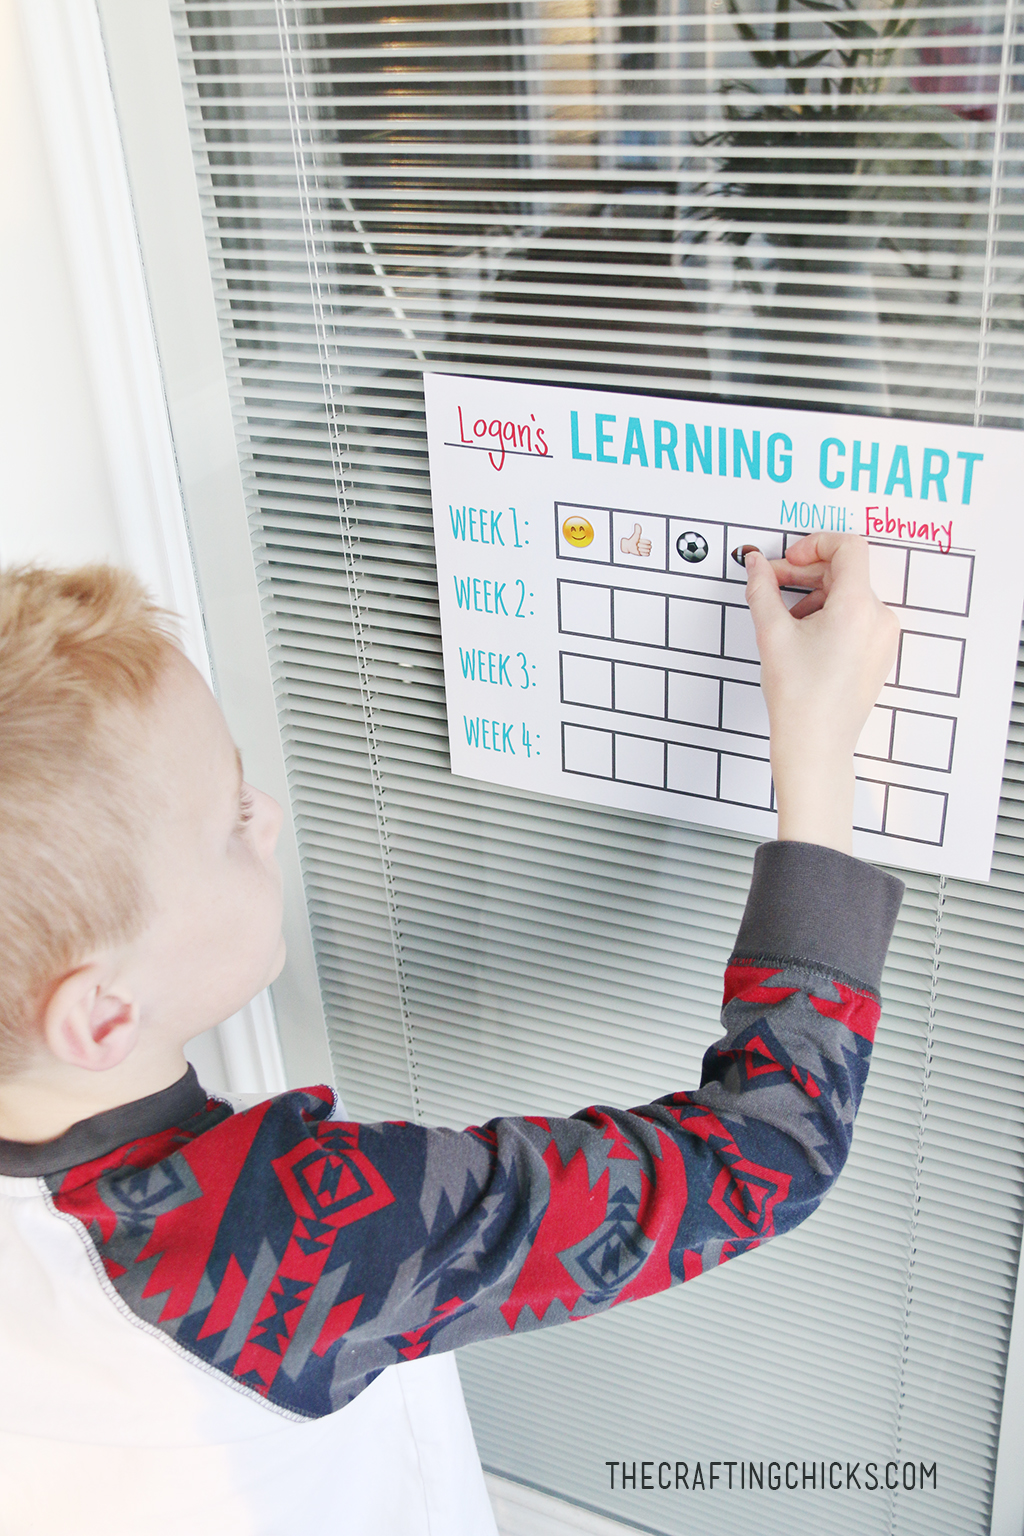 Learning Tracking Chart - A great way to track progress, and celebrate learning achievements at home!